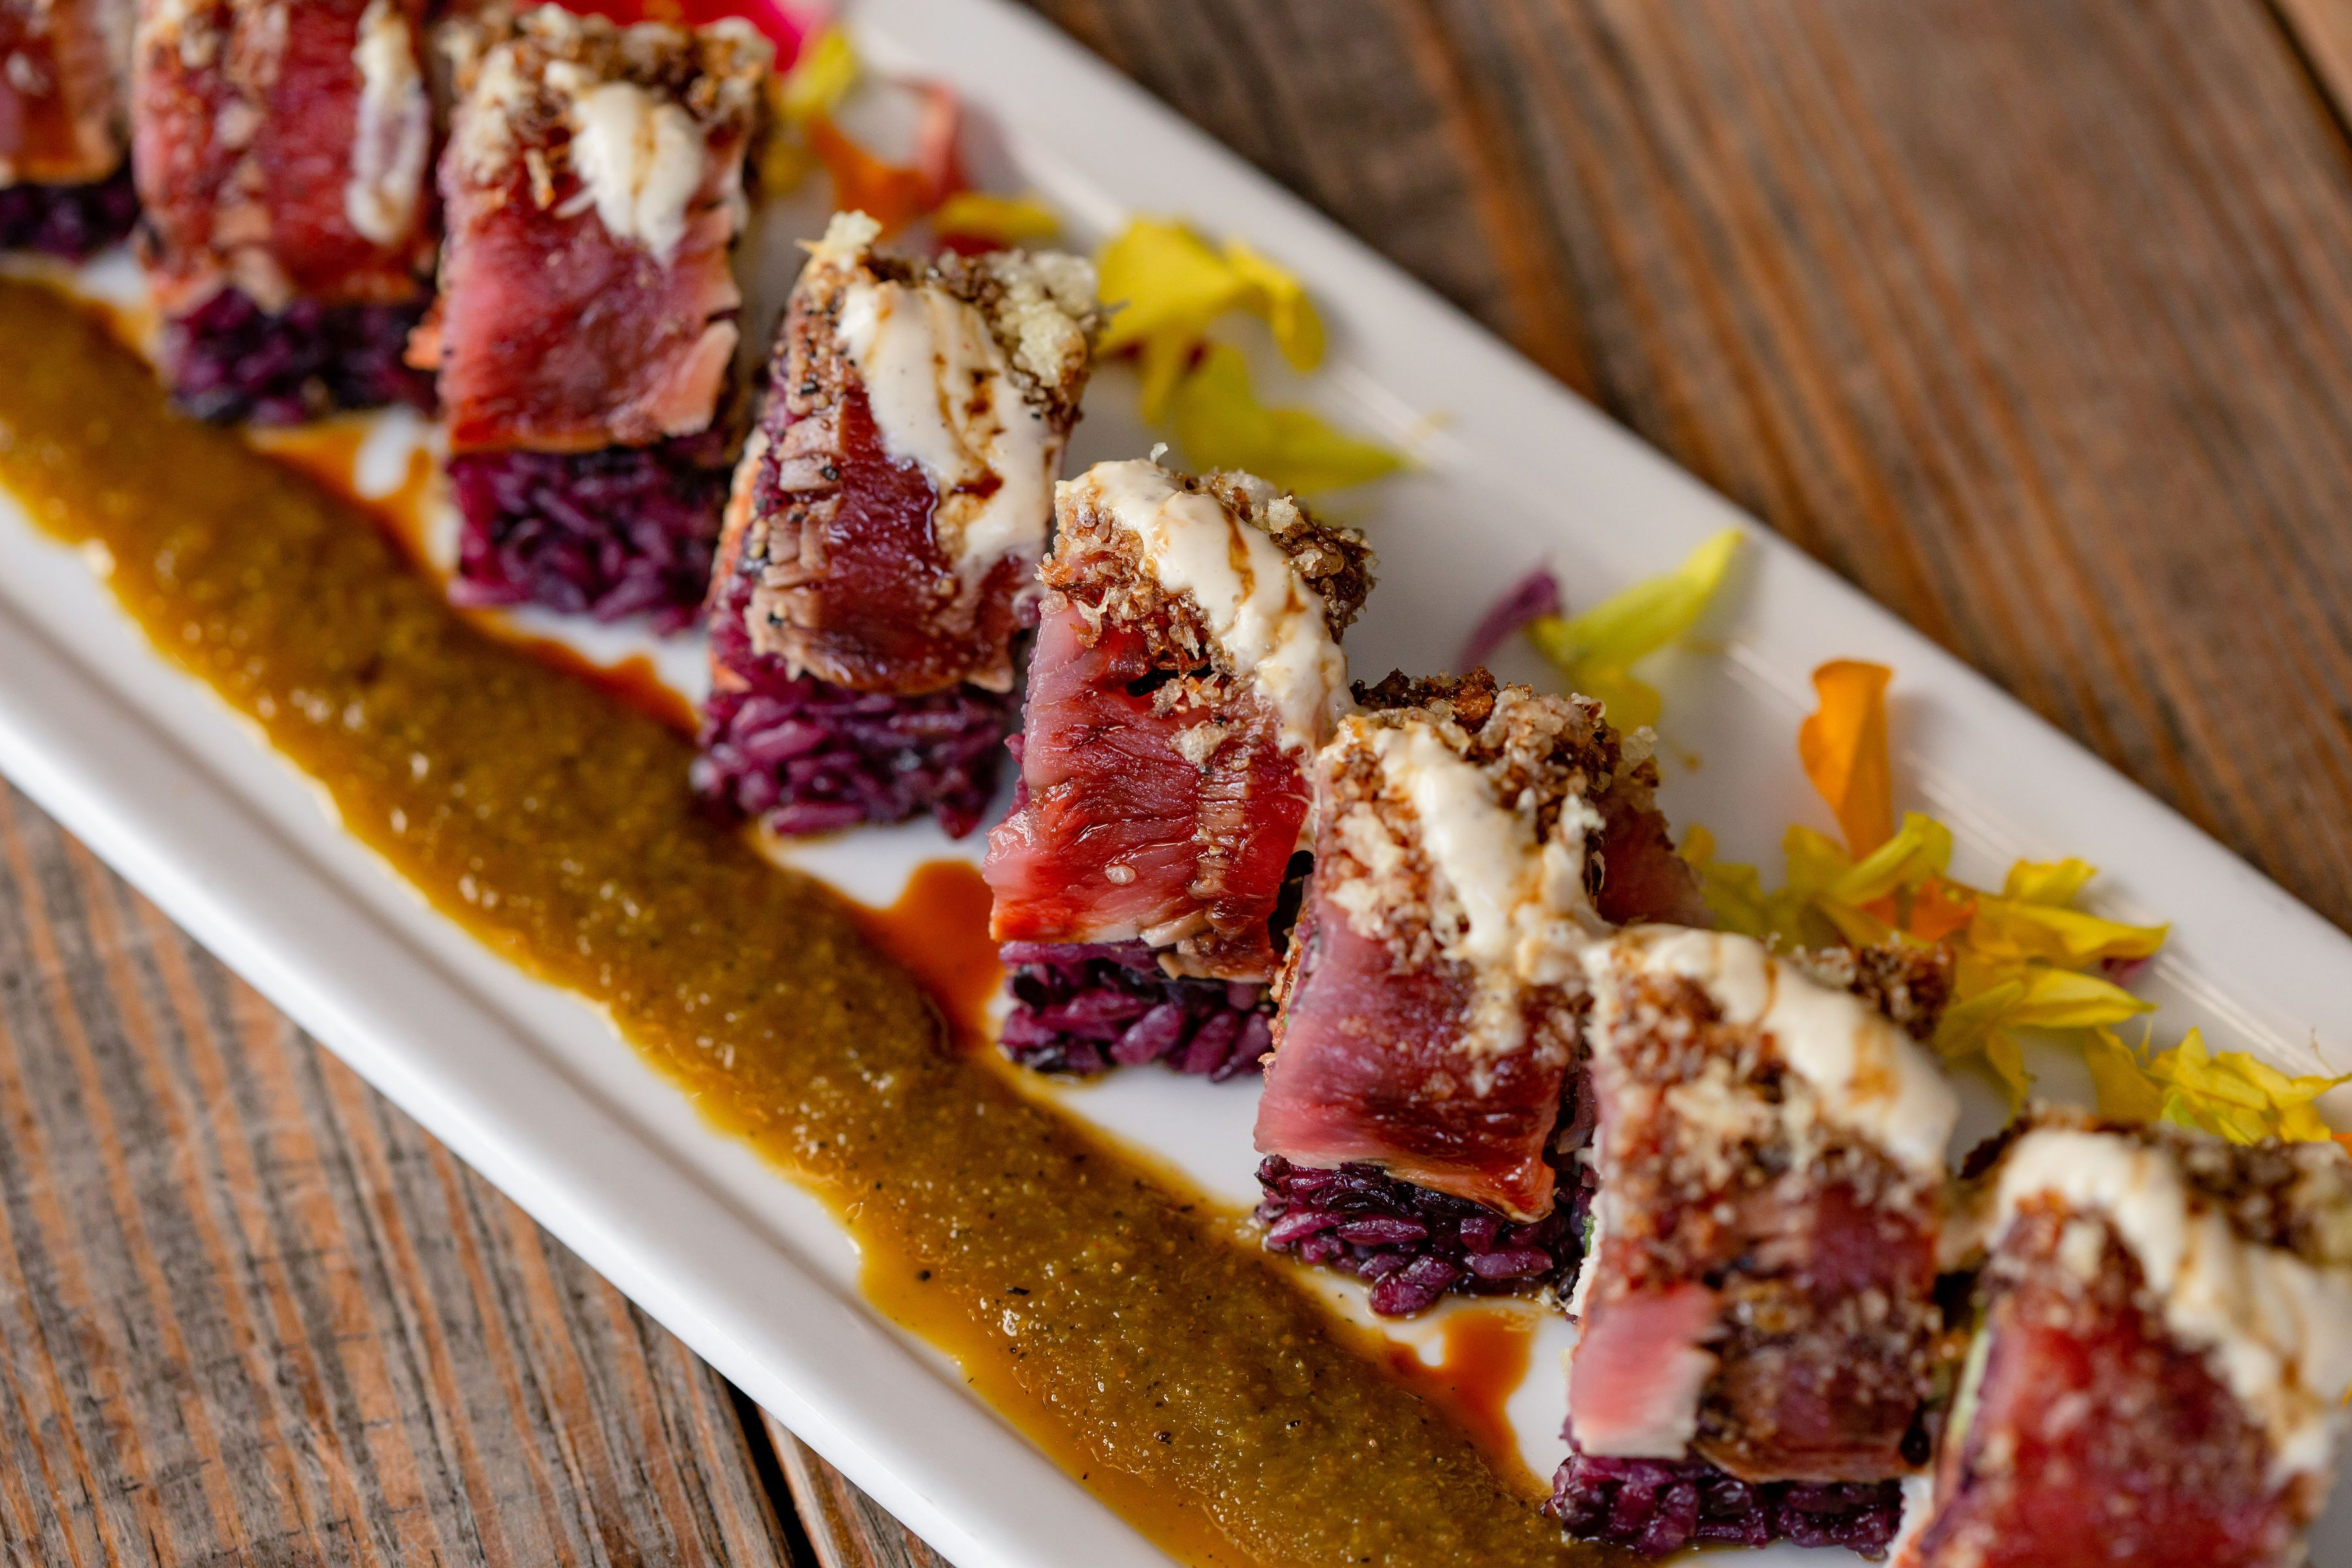 a sushi roll with raw tuna, black rice, and some kind of sauce neatly arranged in slices on a rectangular white plate